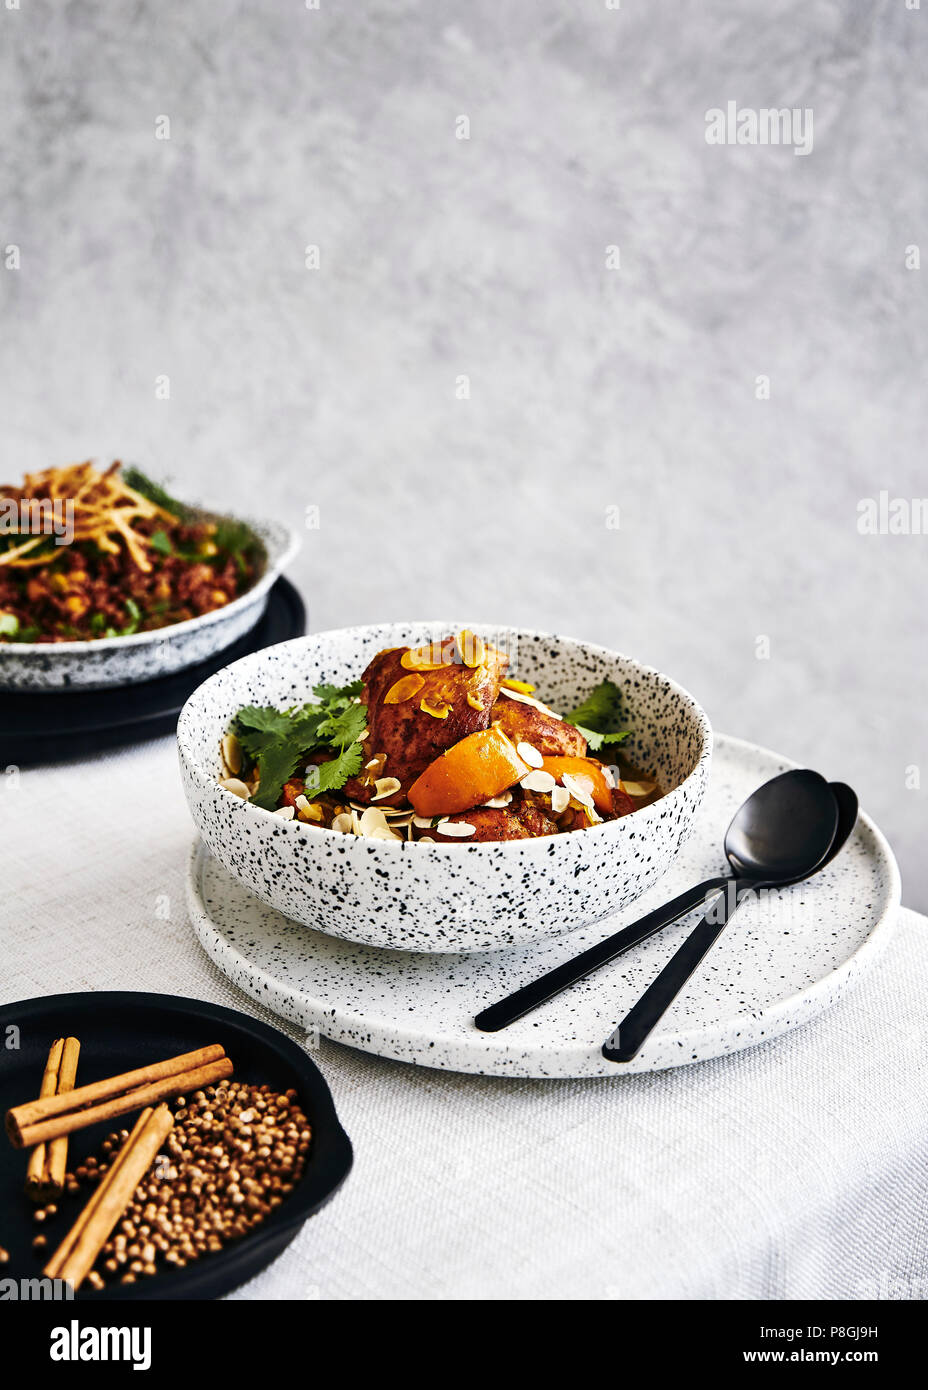 Chicken and persimmon tagine with almonds, coriander. side dish of red rise and chickpeas with fried onions with fresh herbs. - Stock Image